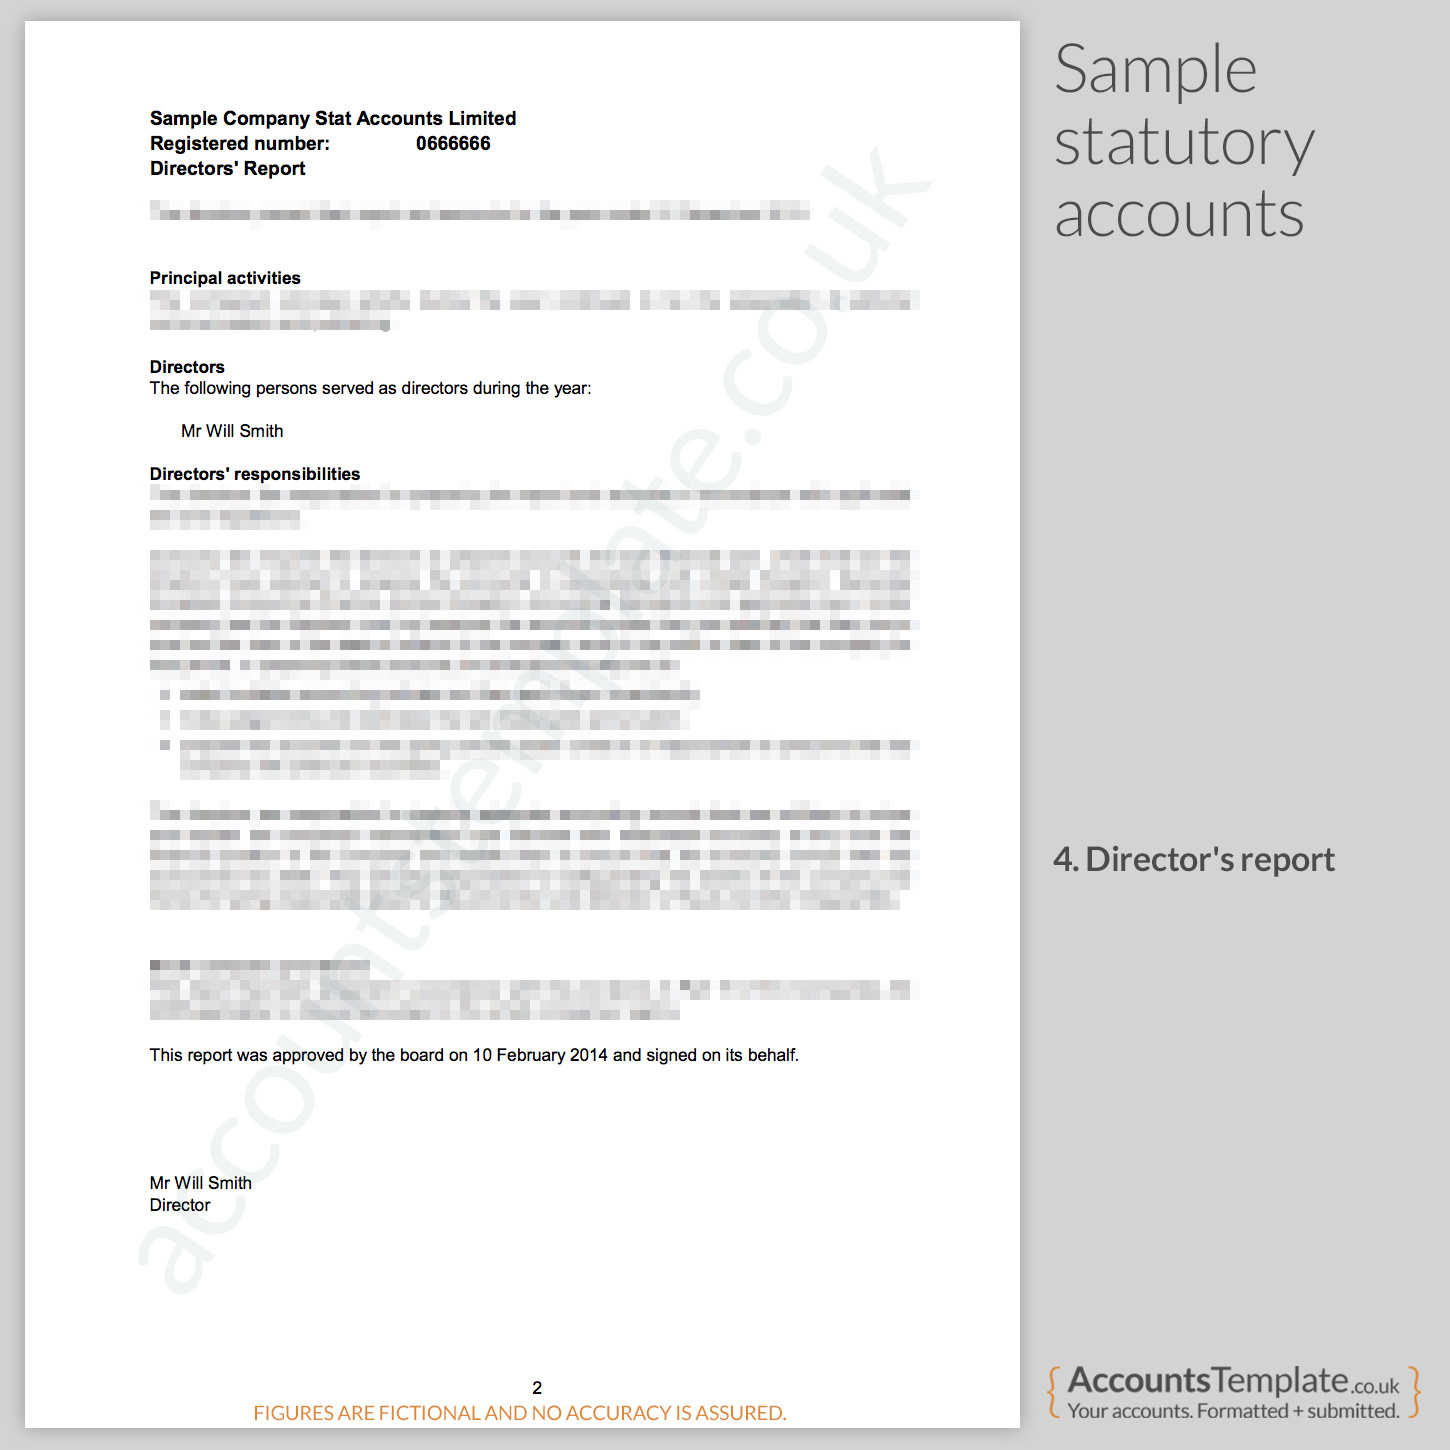 A Guide To The Statutory Accounts Format